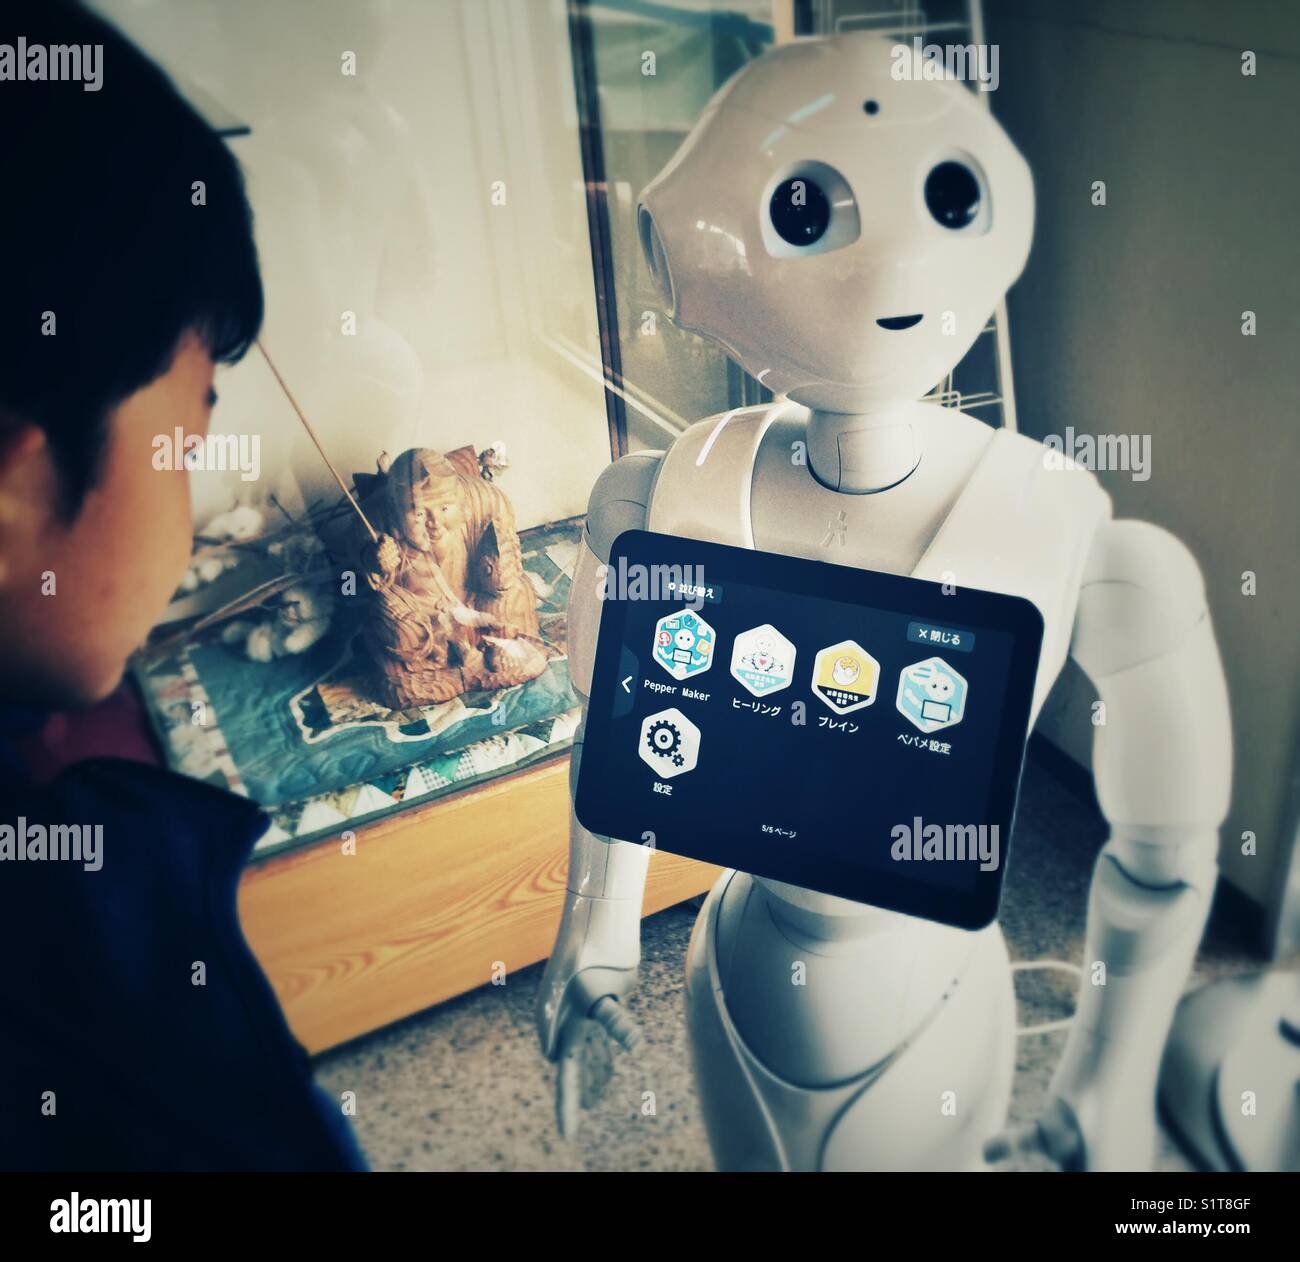 Asian 6 years old boy looking at control panel of interactive robot in Japan - Stock Image